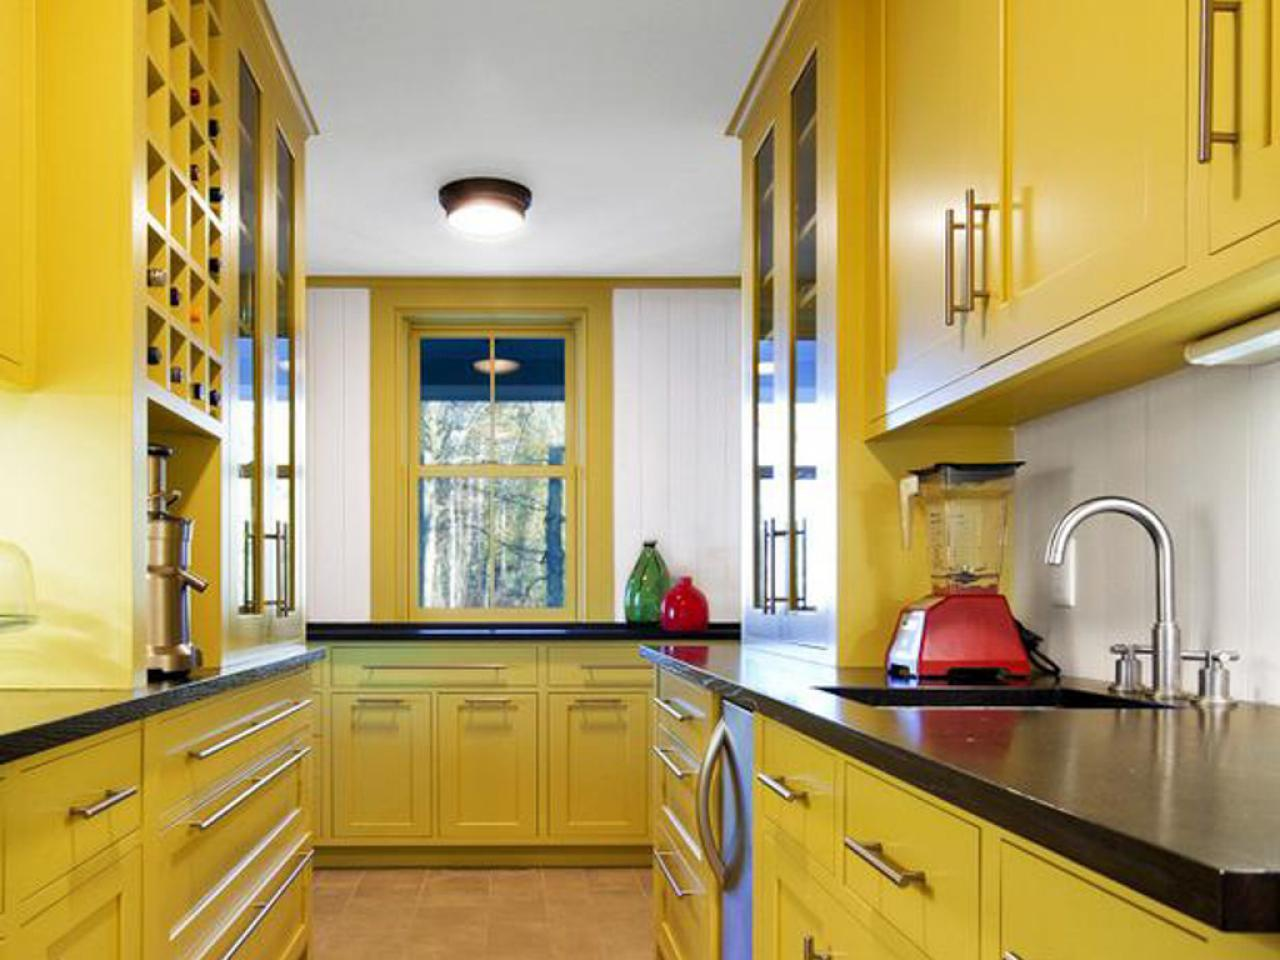 Yellow Kitchen Decor To Brighten Your Cooking Space